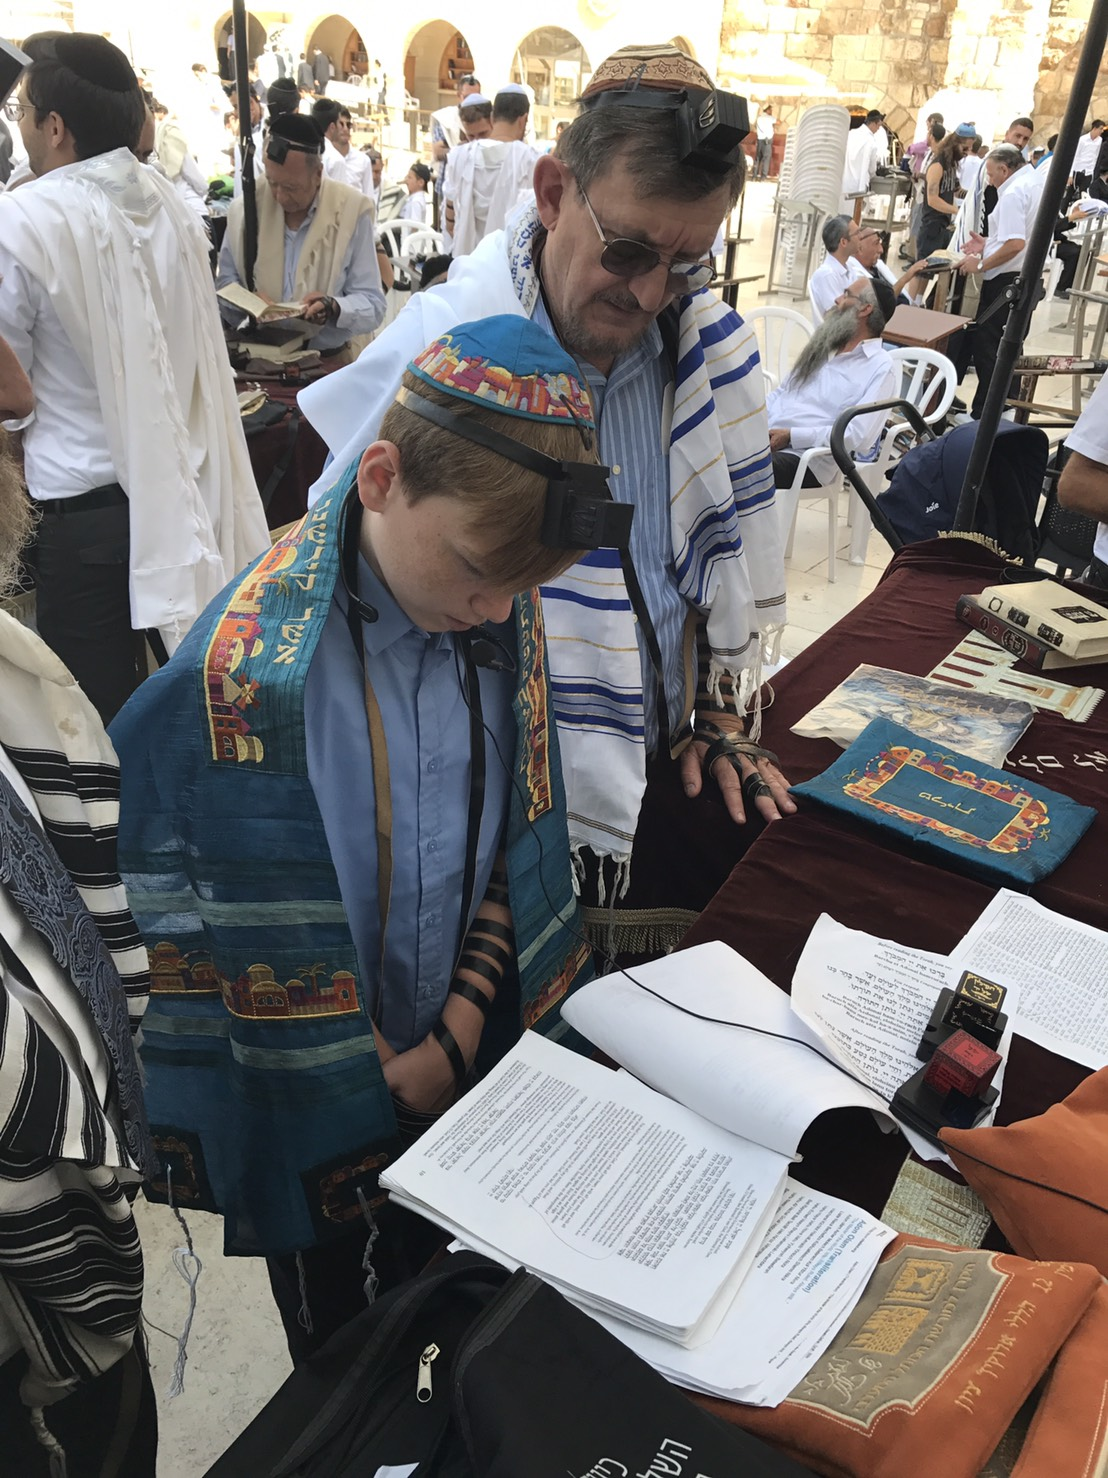 Reading in Jerusalem